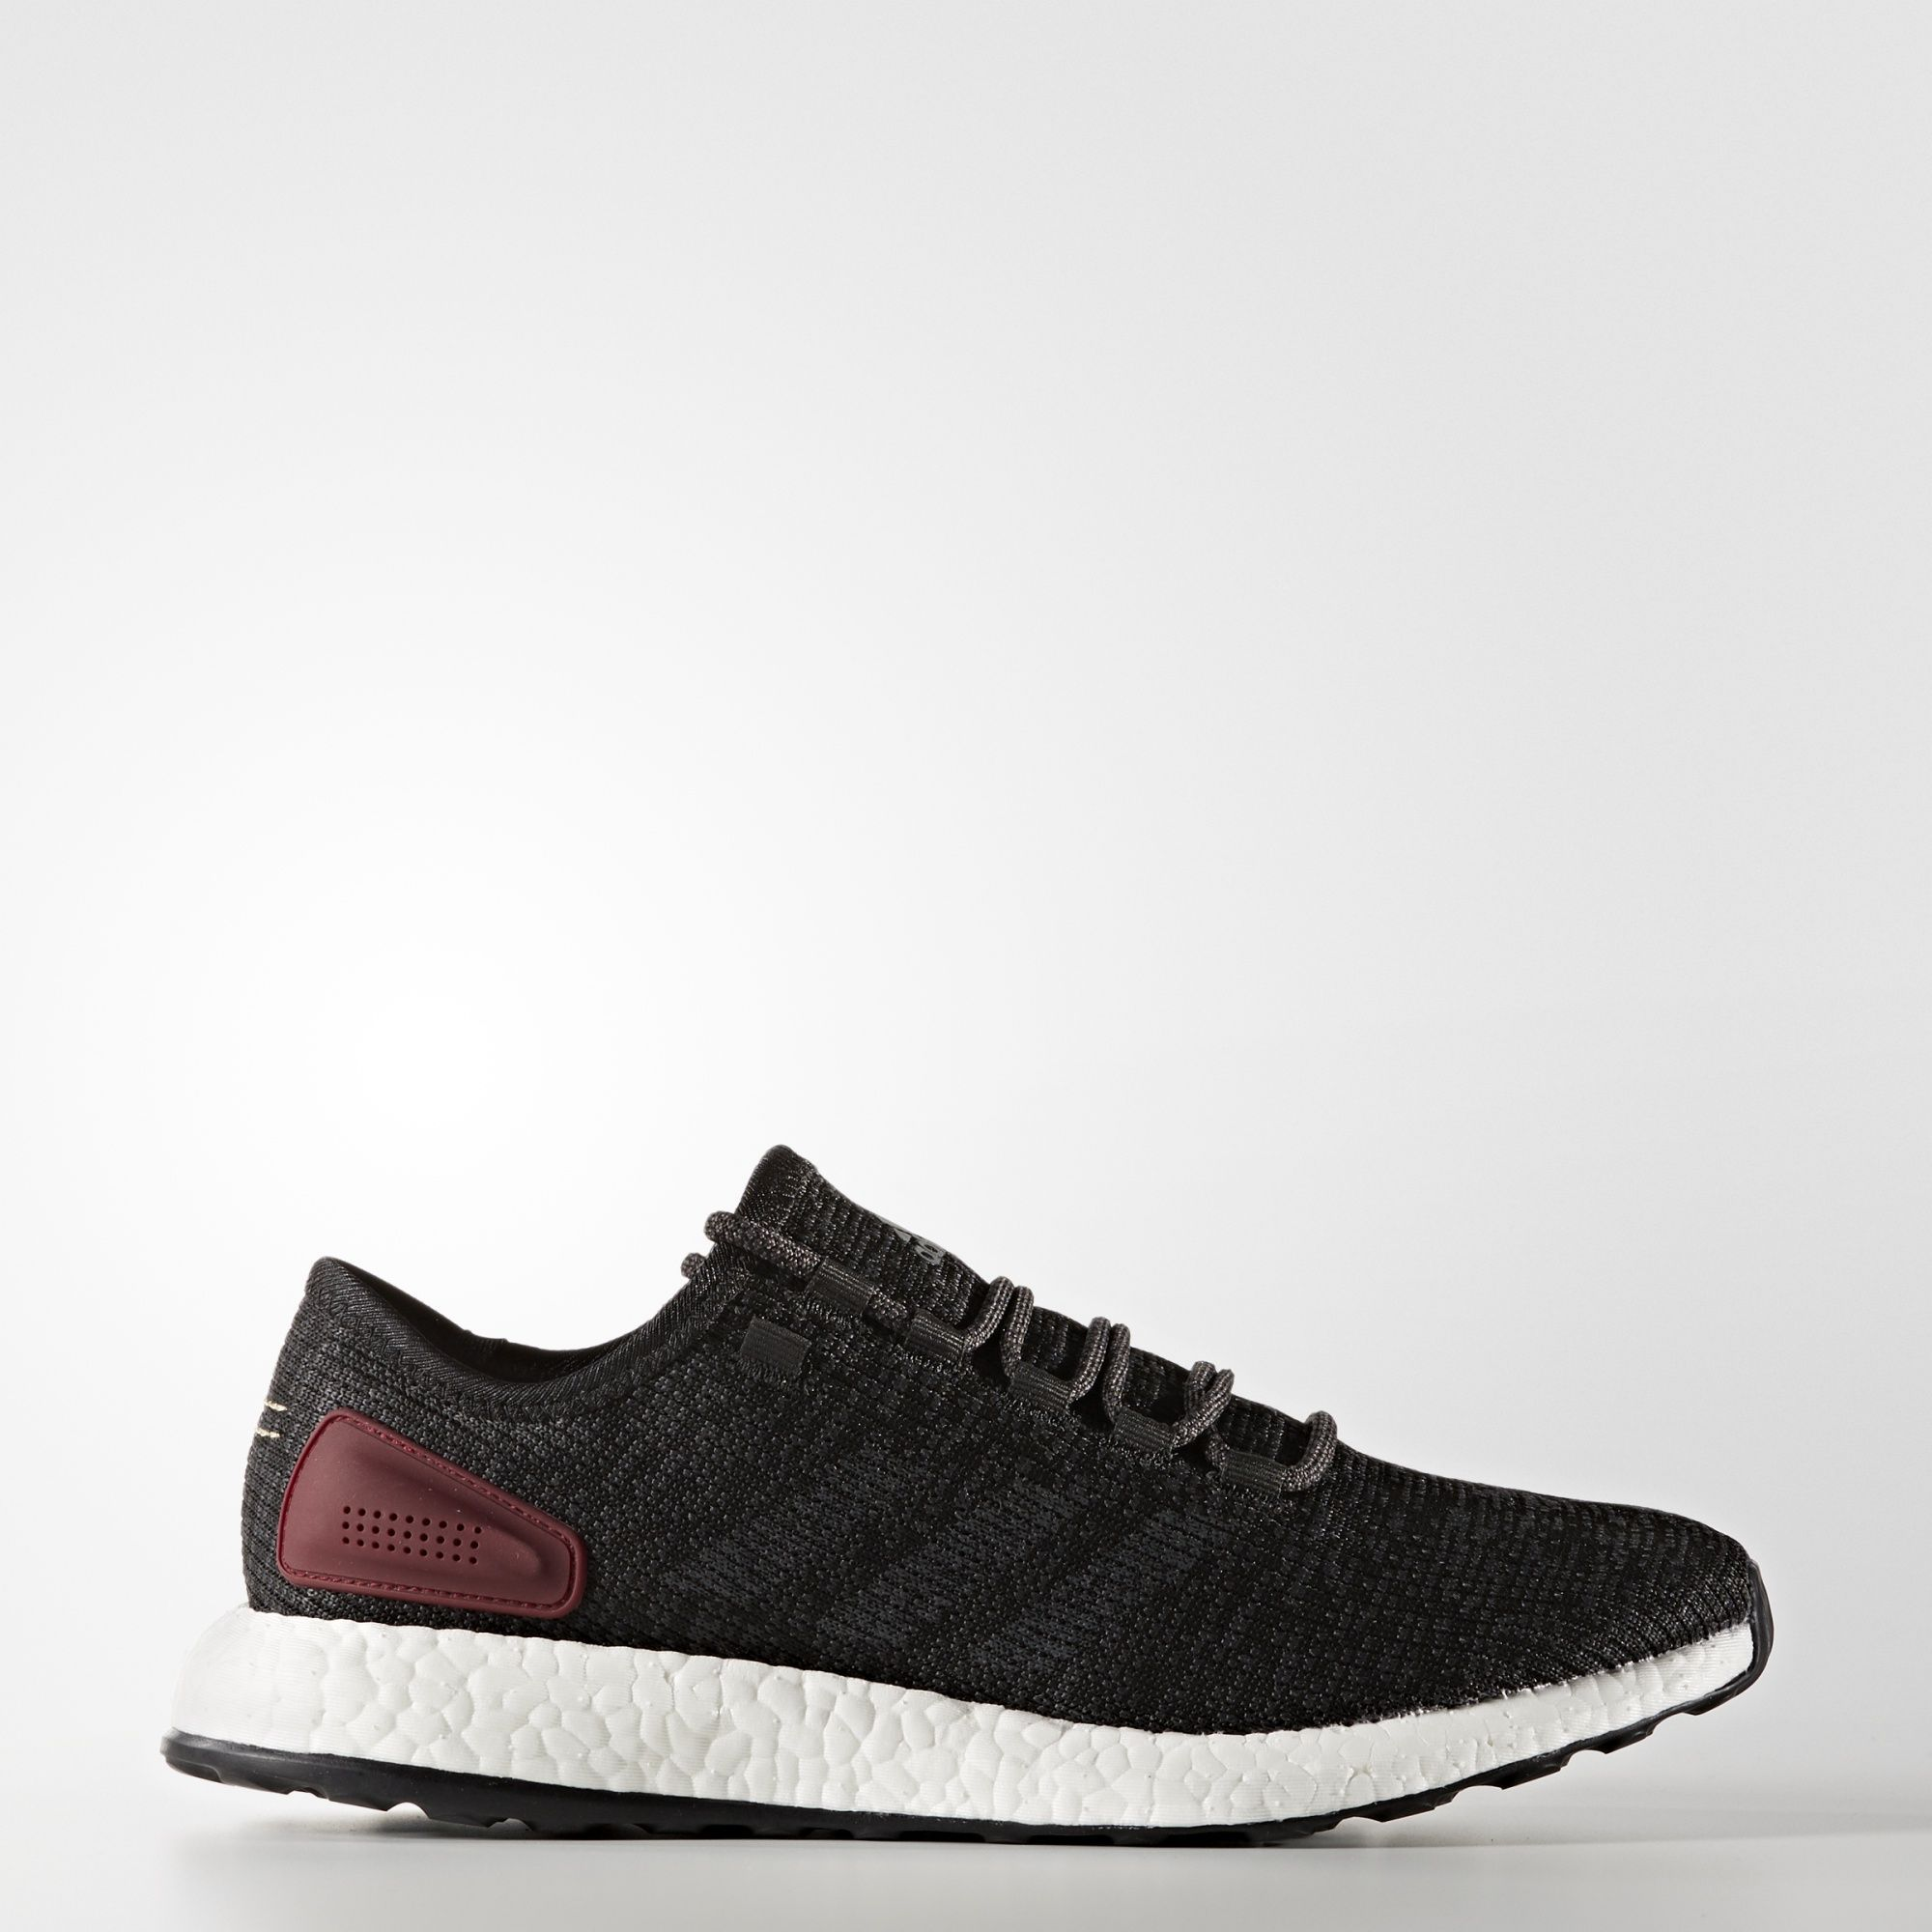 The 2017 Adidas Pure Boost Black Burgundy Is Available Now